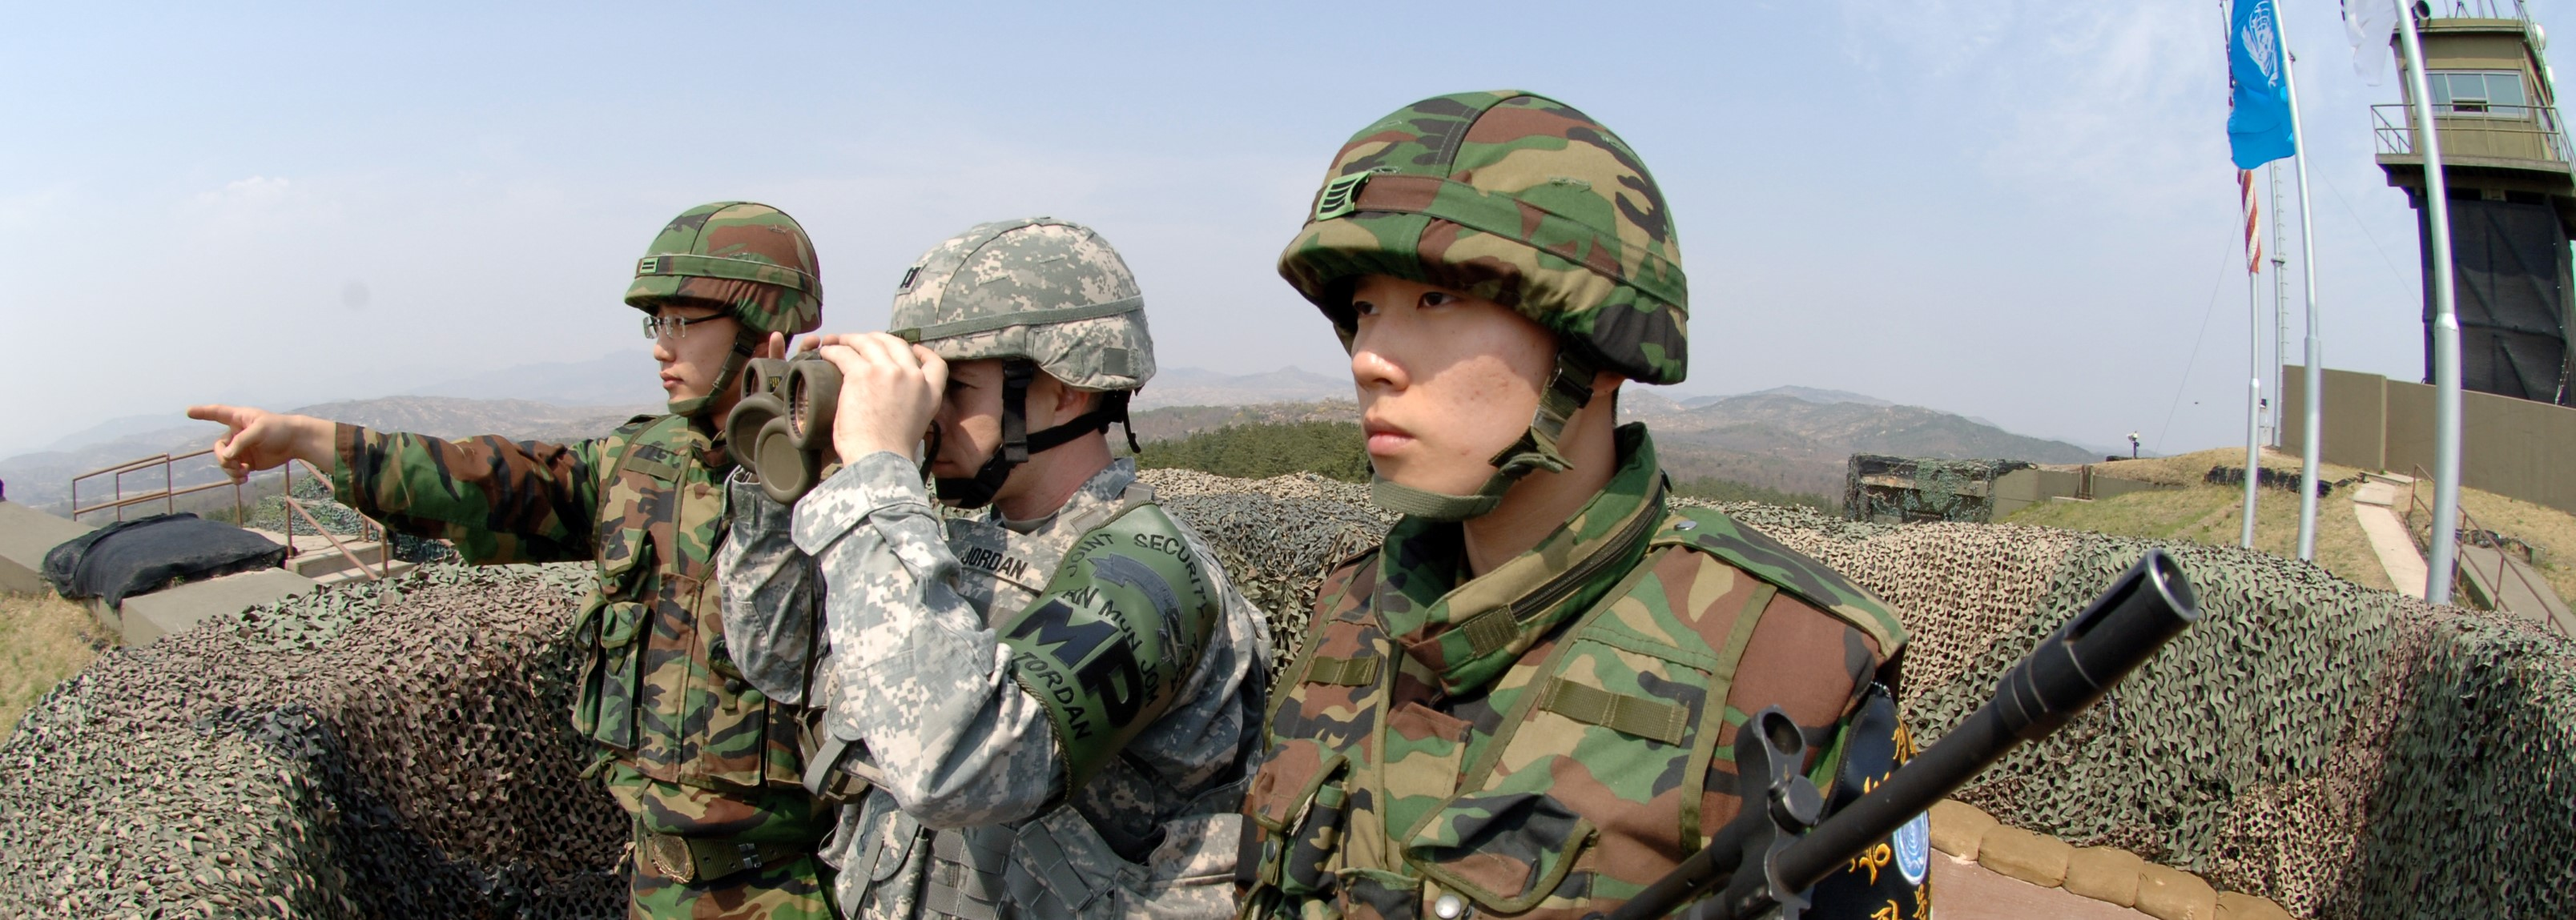 ROK and US soldiers at Observation Post Ouellette, South Korea. (Photo: Flickr/US Army)